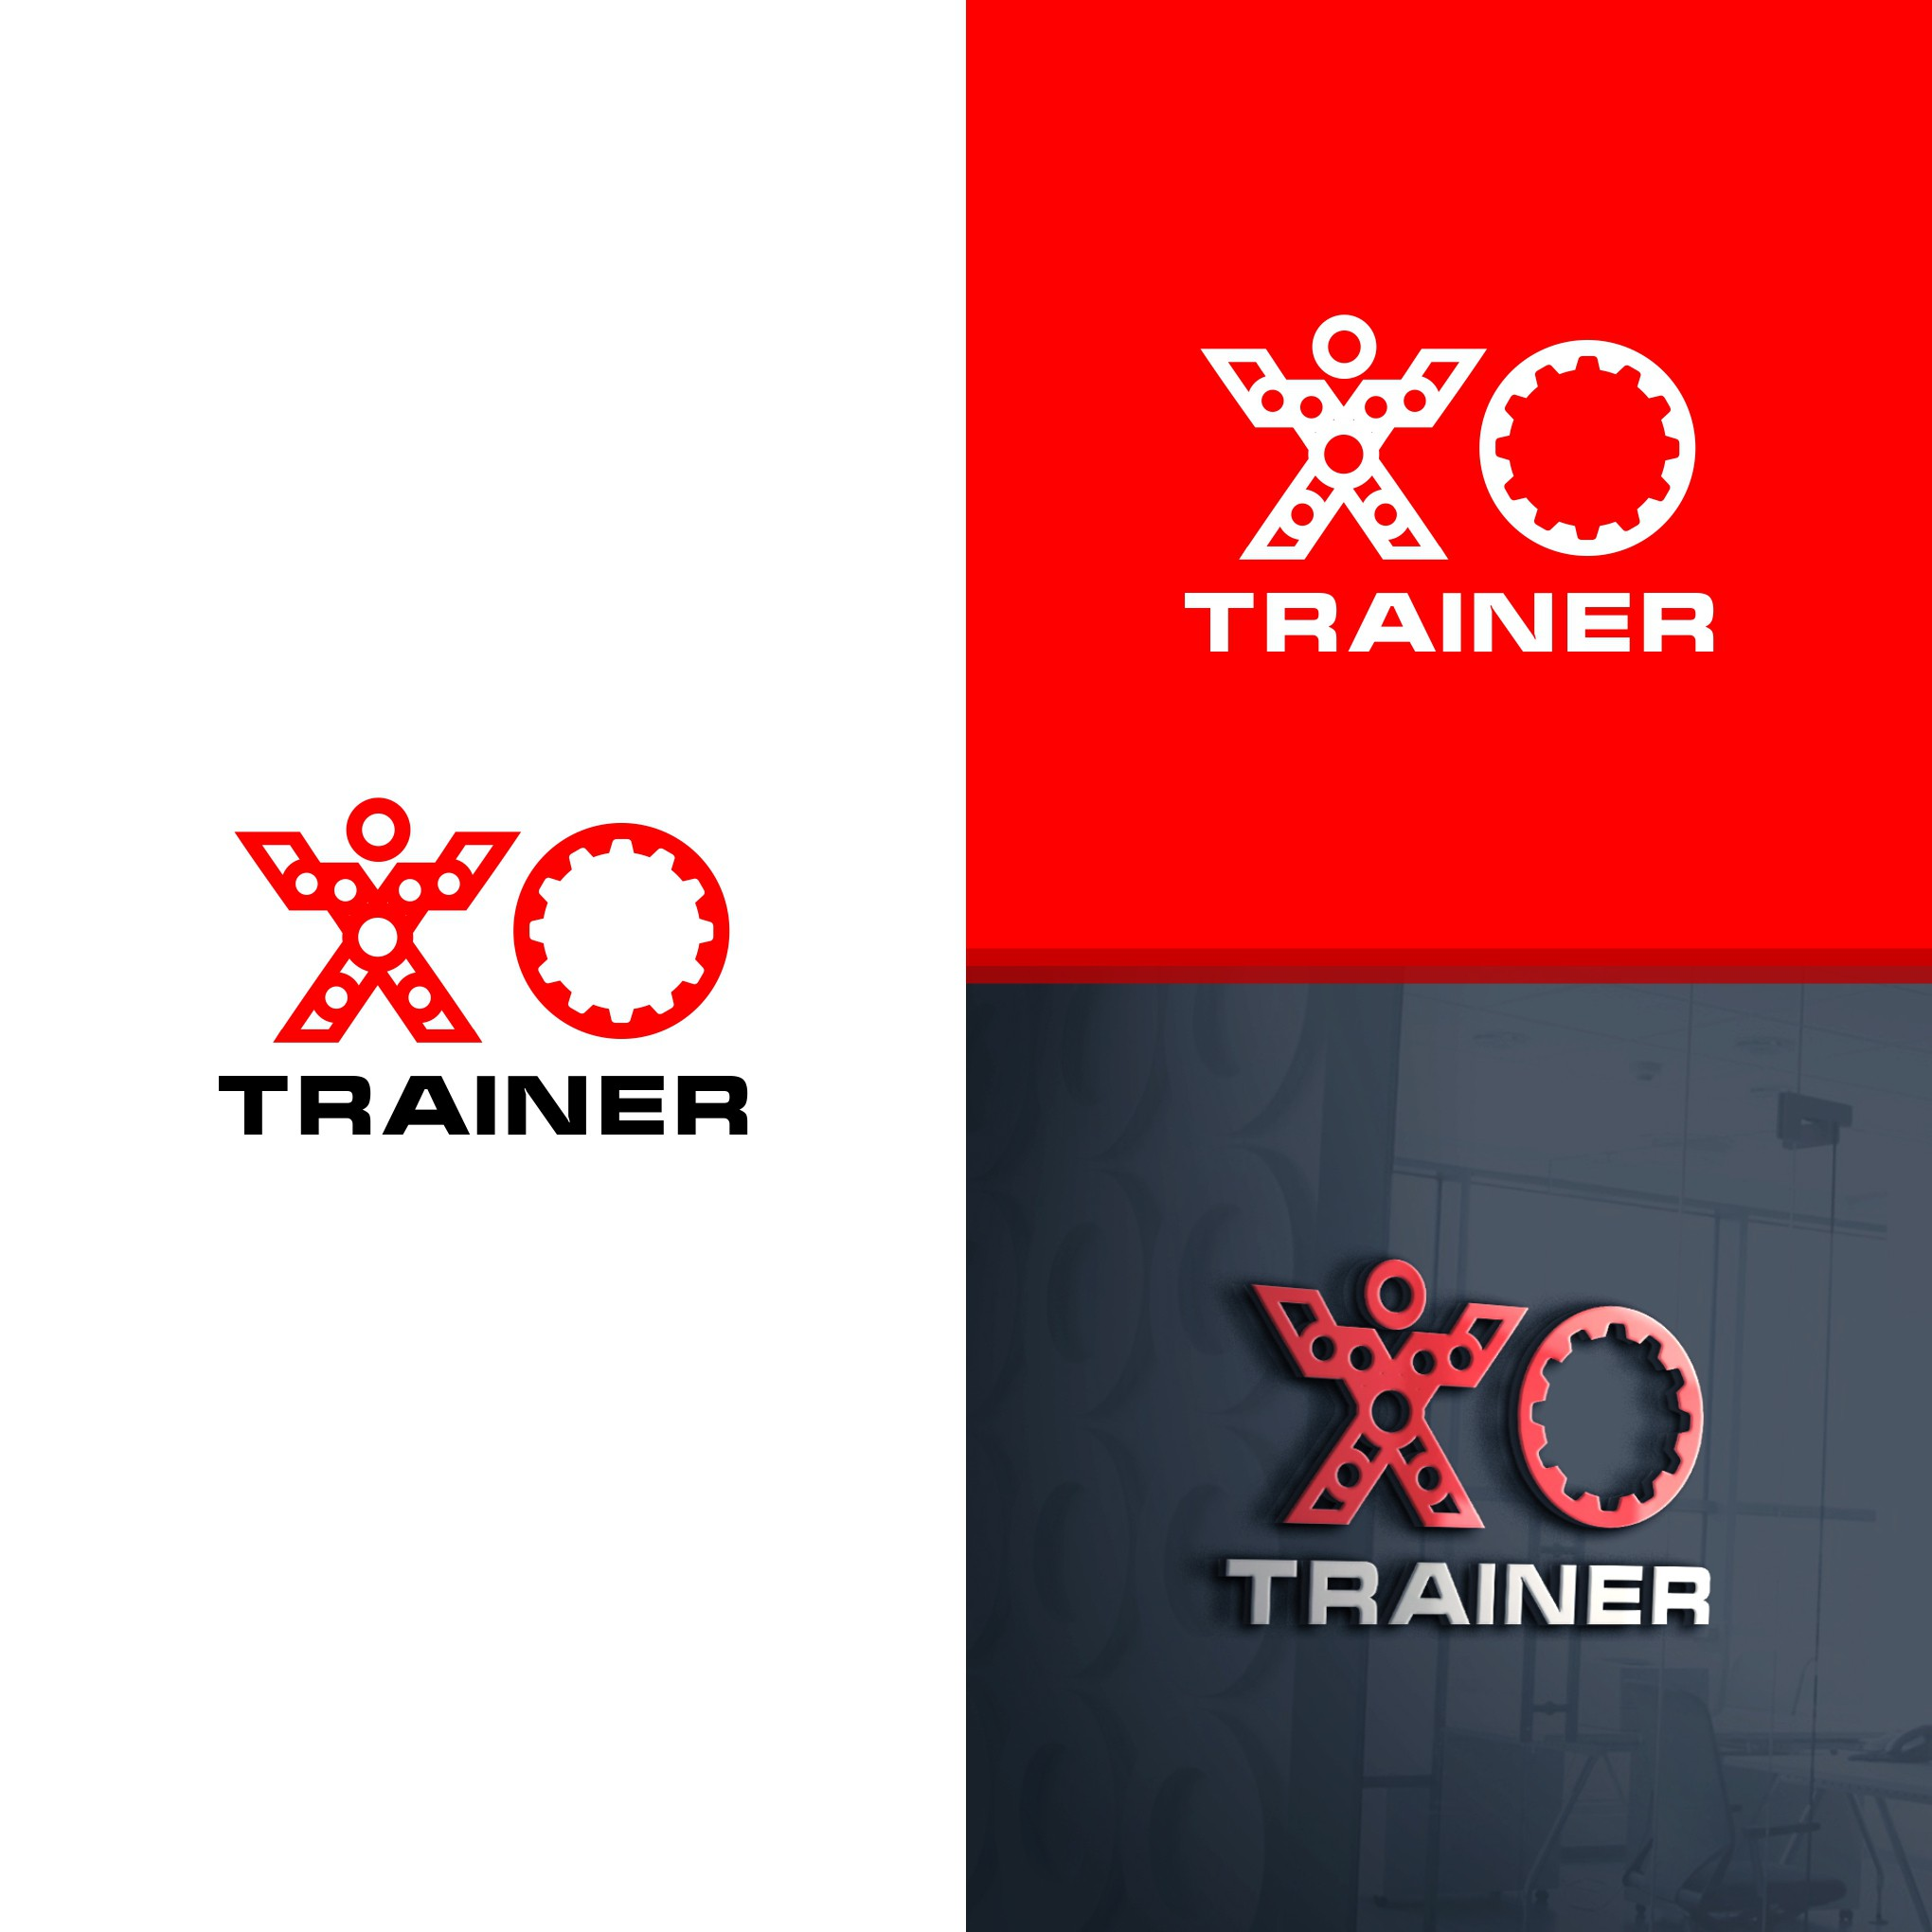 XOTrainer - Fitness equipment company welcomes your creativity and ingenuity!